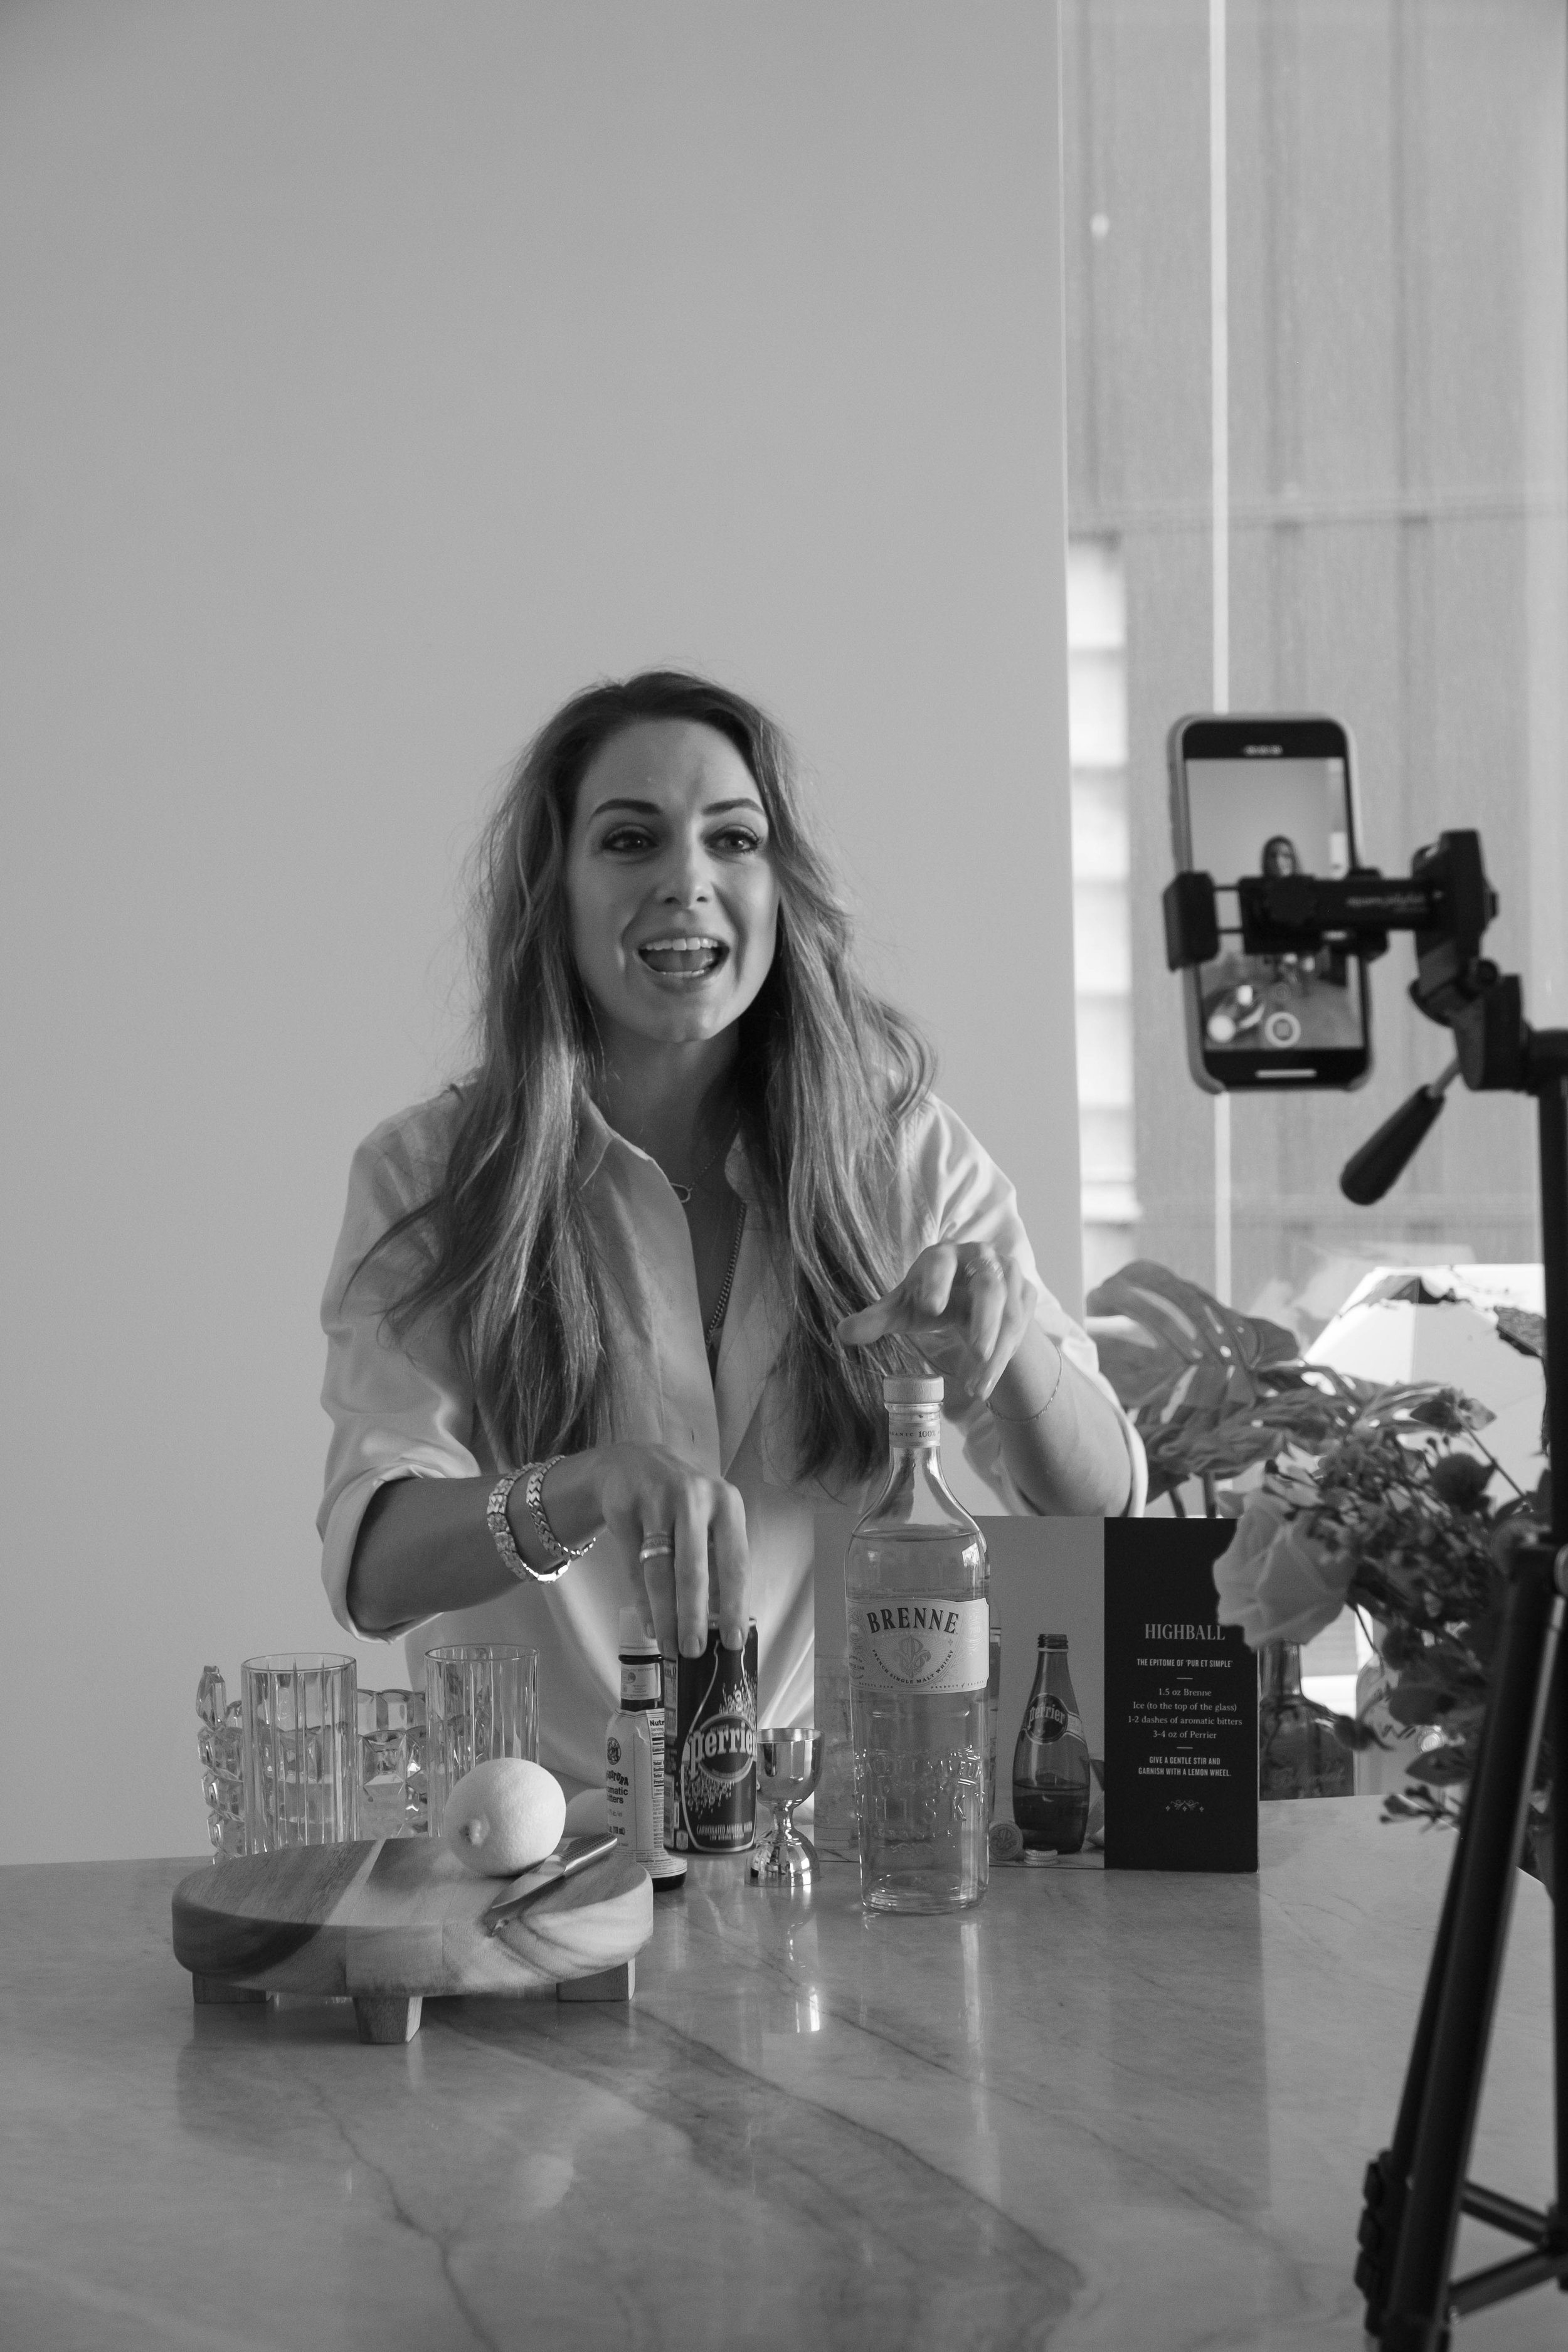 Creating videos both for social media and future trainings is key to her brand. Here she is mixing a highball that combines Perrier and bitters.